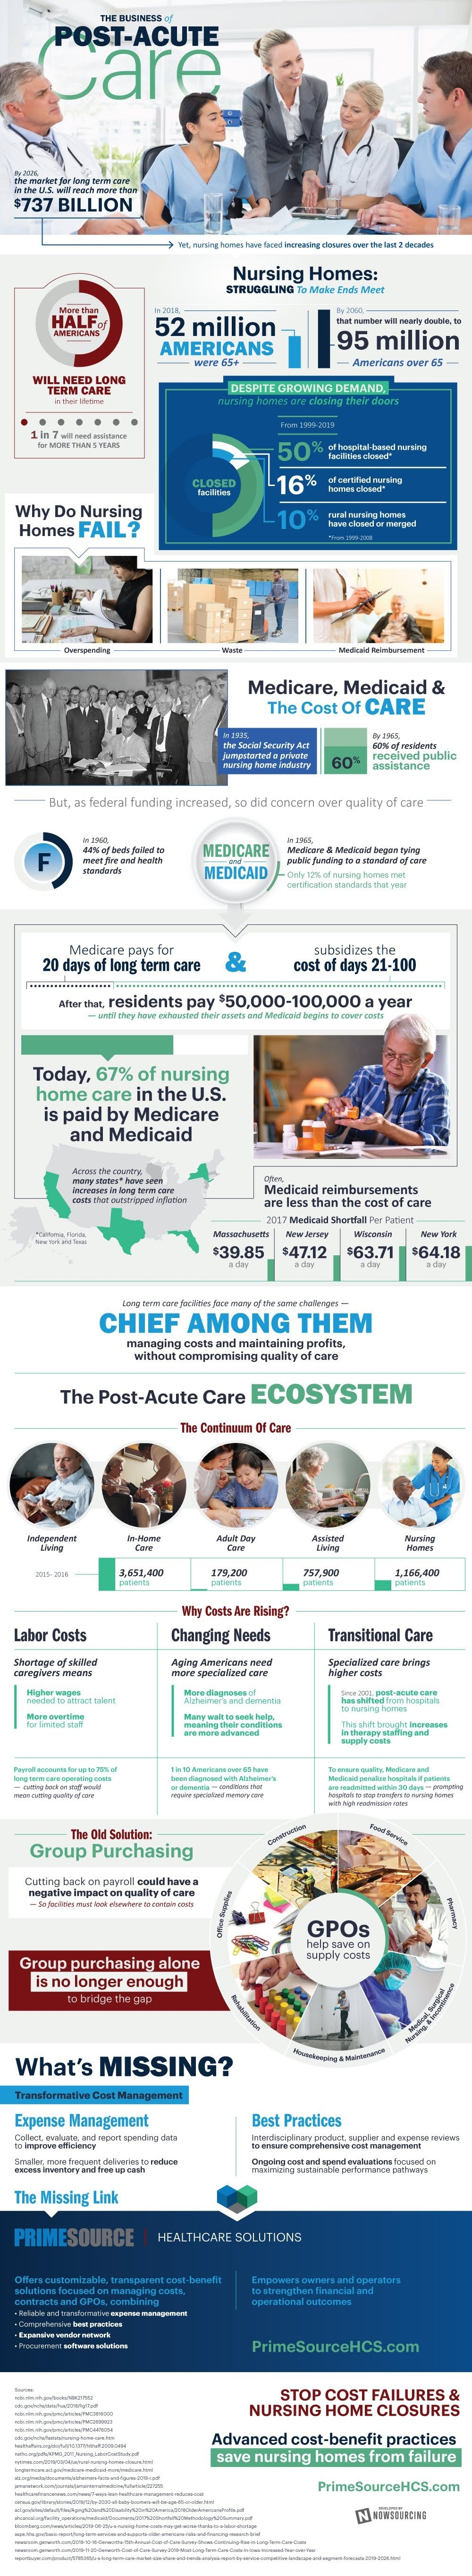 The Rising Closures Among Post-Acute Care #infographic